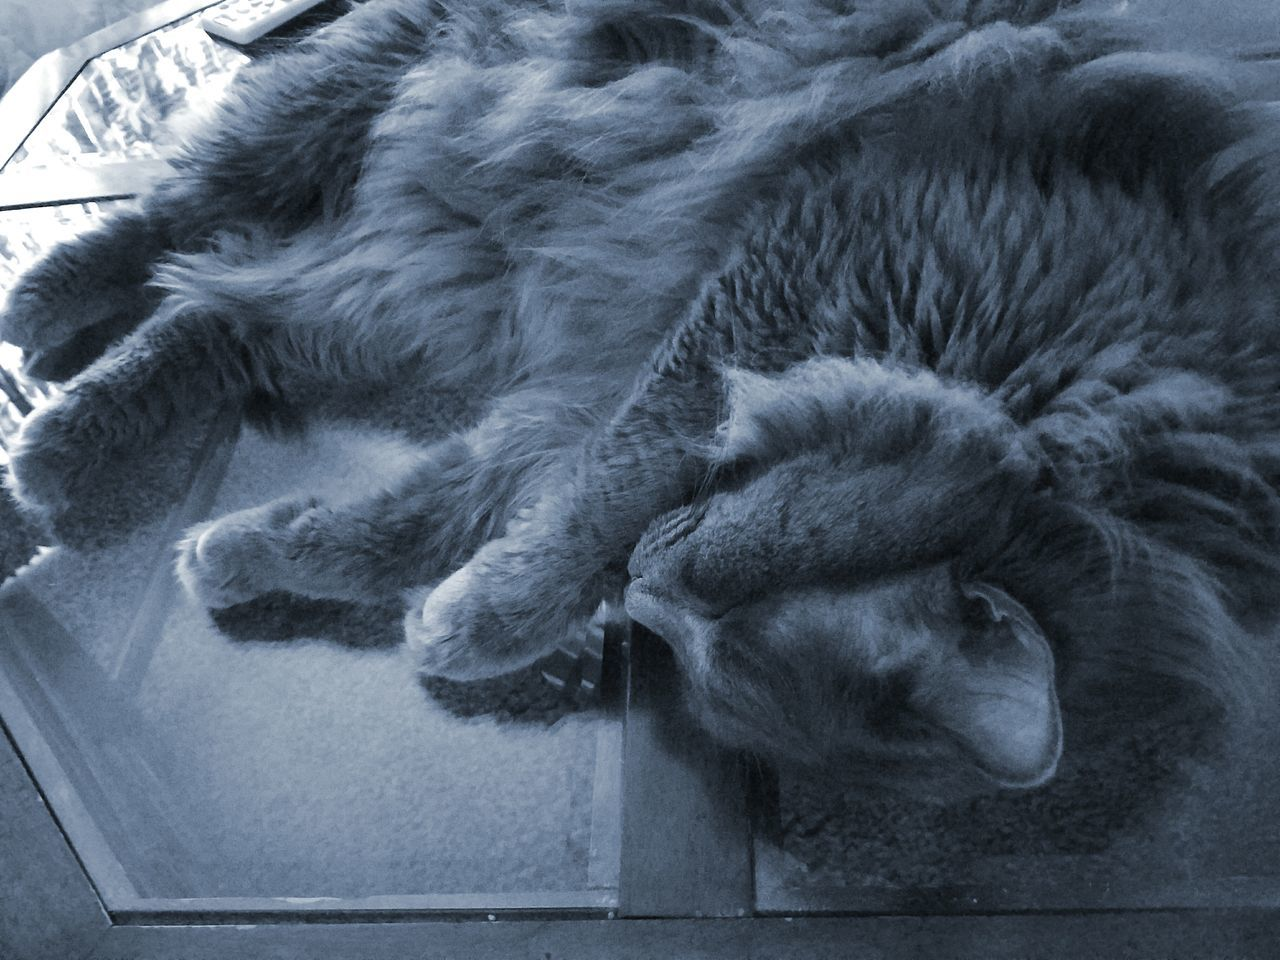 animal themes, one animal, mammal, sleeping, relaxation, no people, domestic animals, pets, lying down, domestic cat, indoors, close-up, feline, day